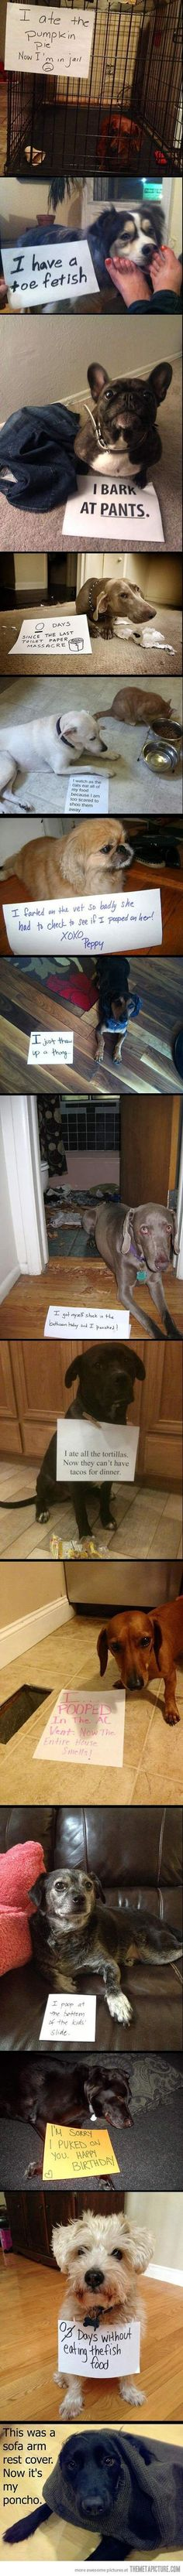 dog shaming at its finest